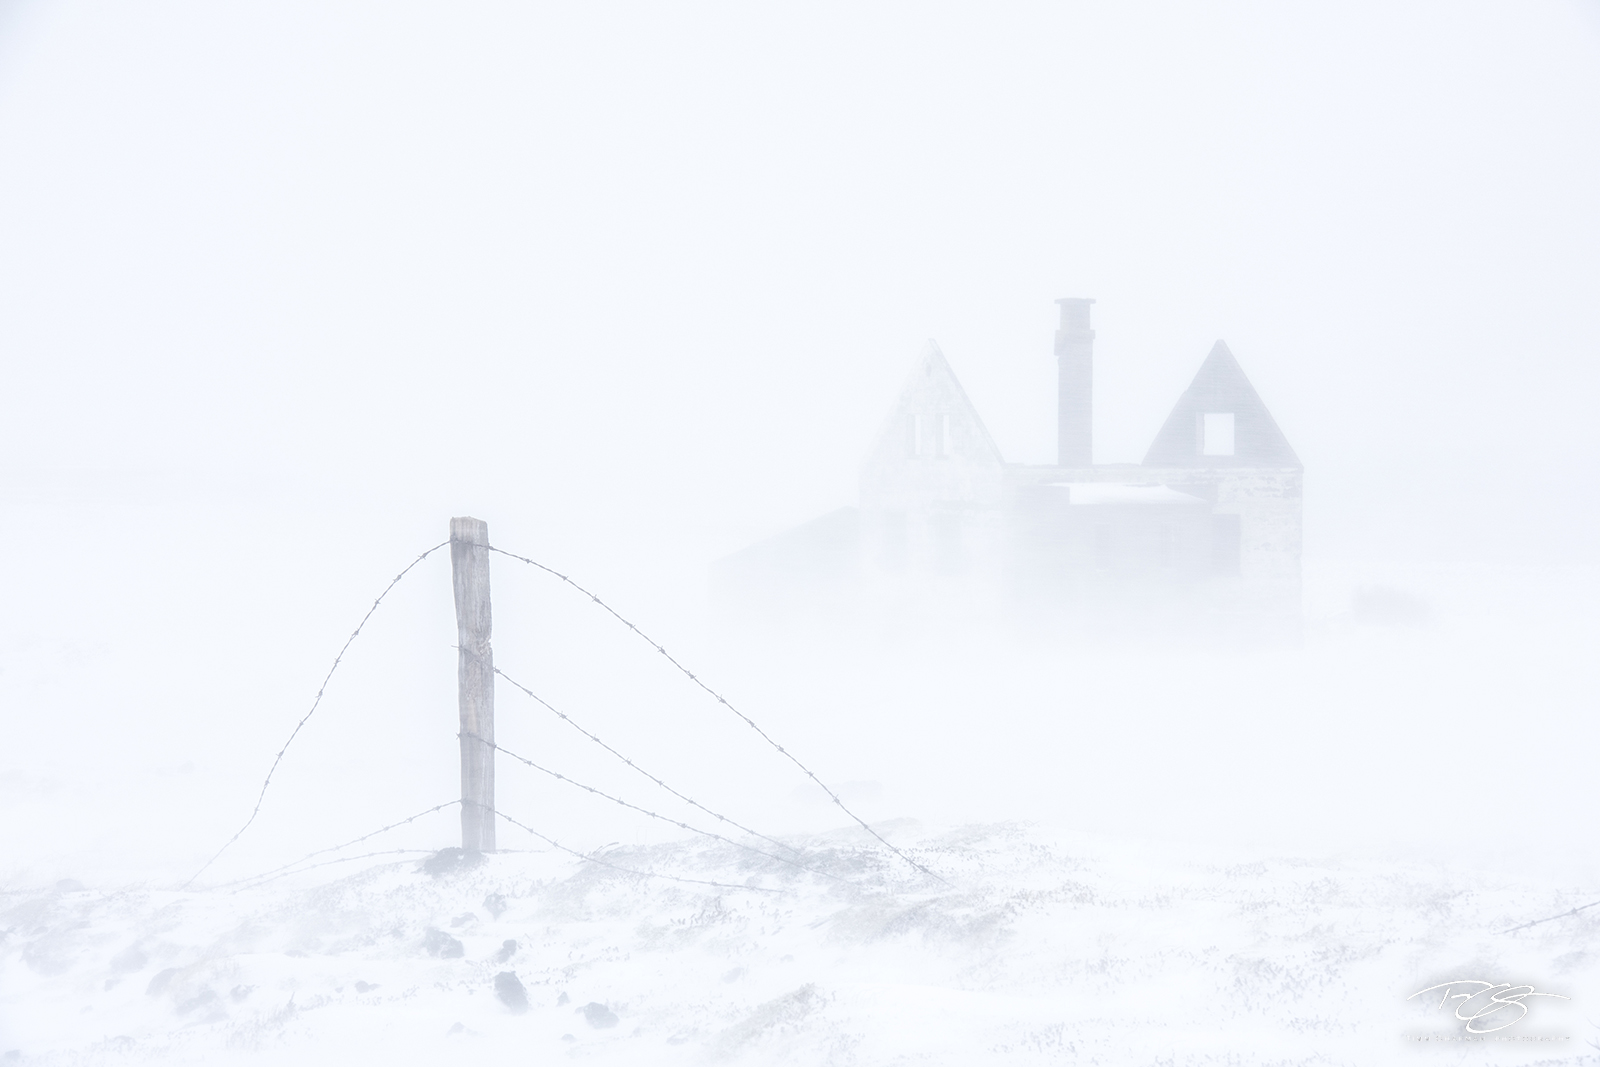 Iceland, Whiteout, abandoned, house, farmhouse, winter, snow, snowy, wind, deserted, ruin, barbed wire, fence, snowstorm, blizzard, arctic, game of thrones, viking, secret life of walter mitty, photo